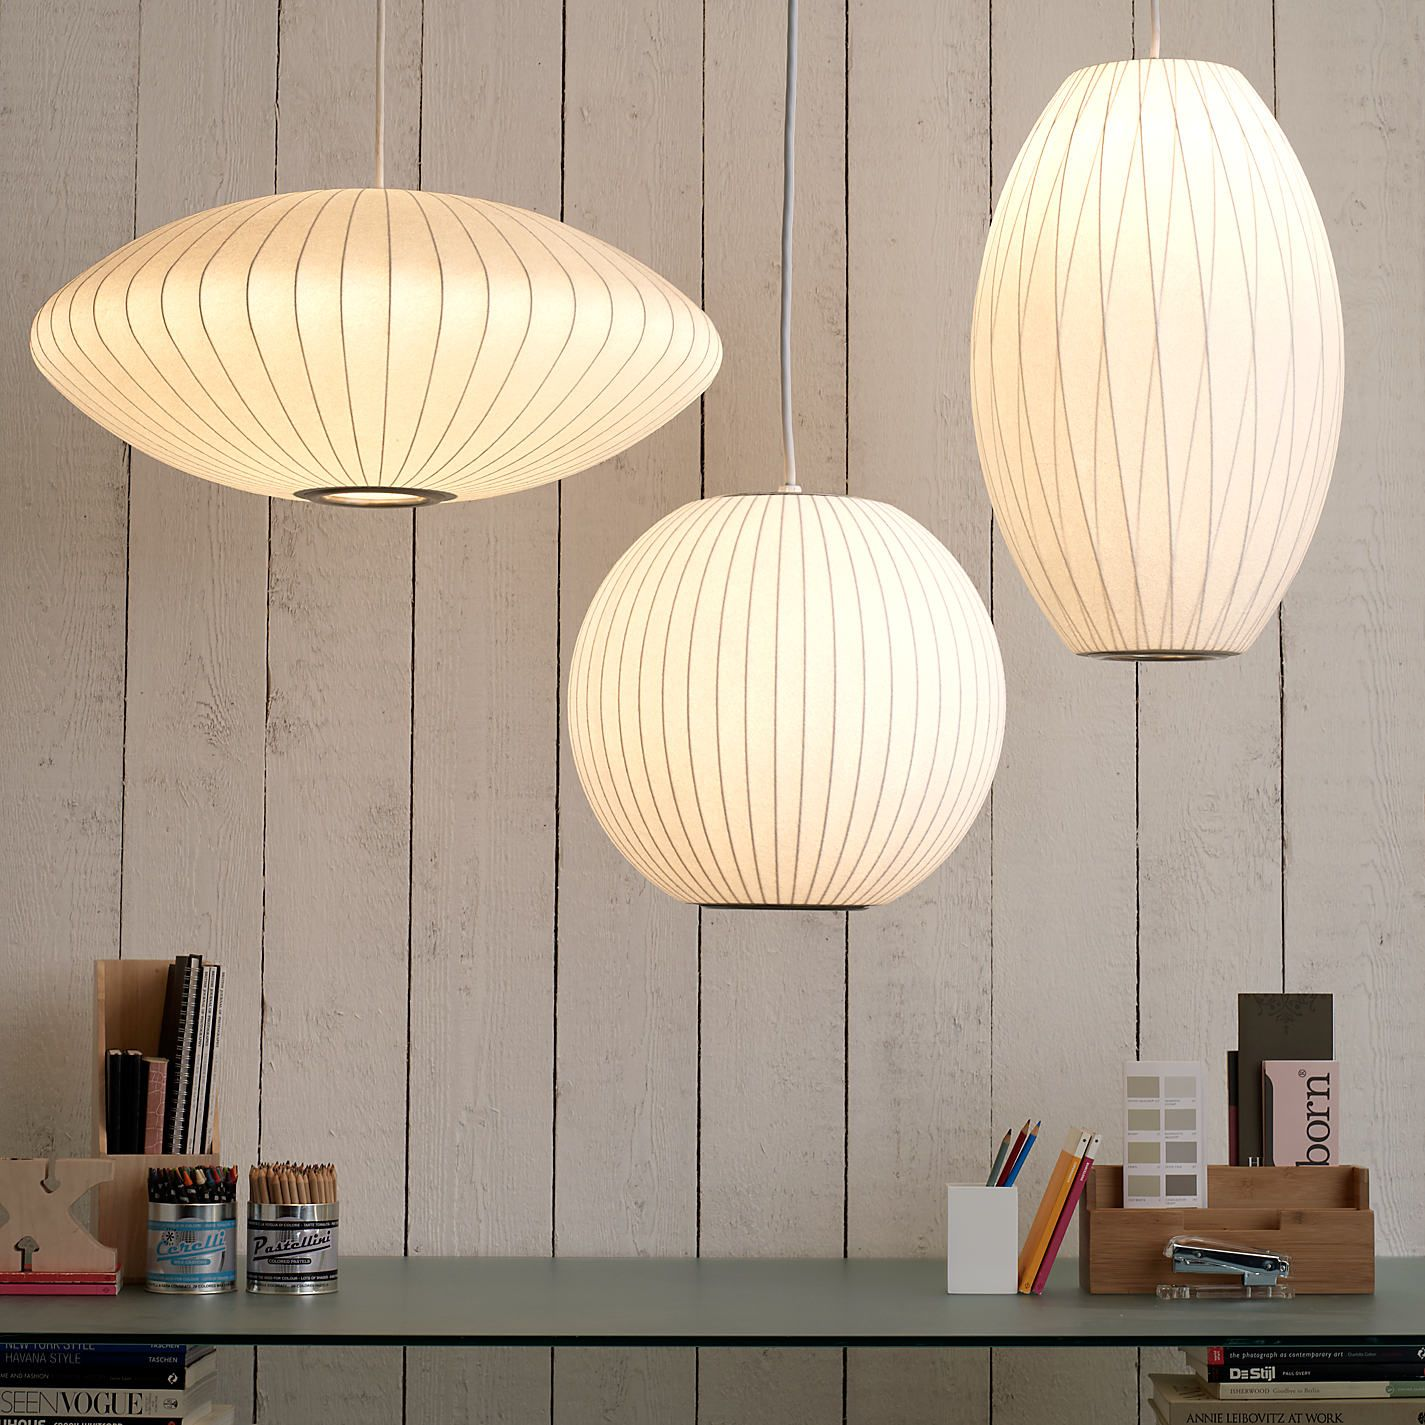 Amazing The Nelson Saucer Crisscross Bubble Pendant Is Part Of The Nelson Bubble  Lamp Series. Inspired By A Set Of Silk Covered Swedish Hanging Lamps,  George Nelson ... Awesome Design